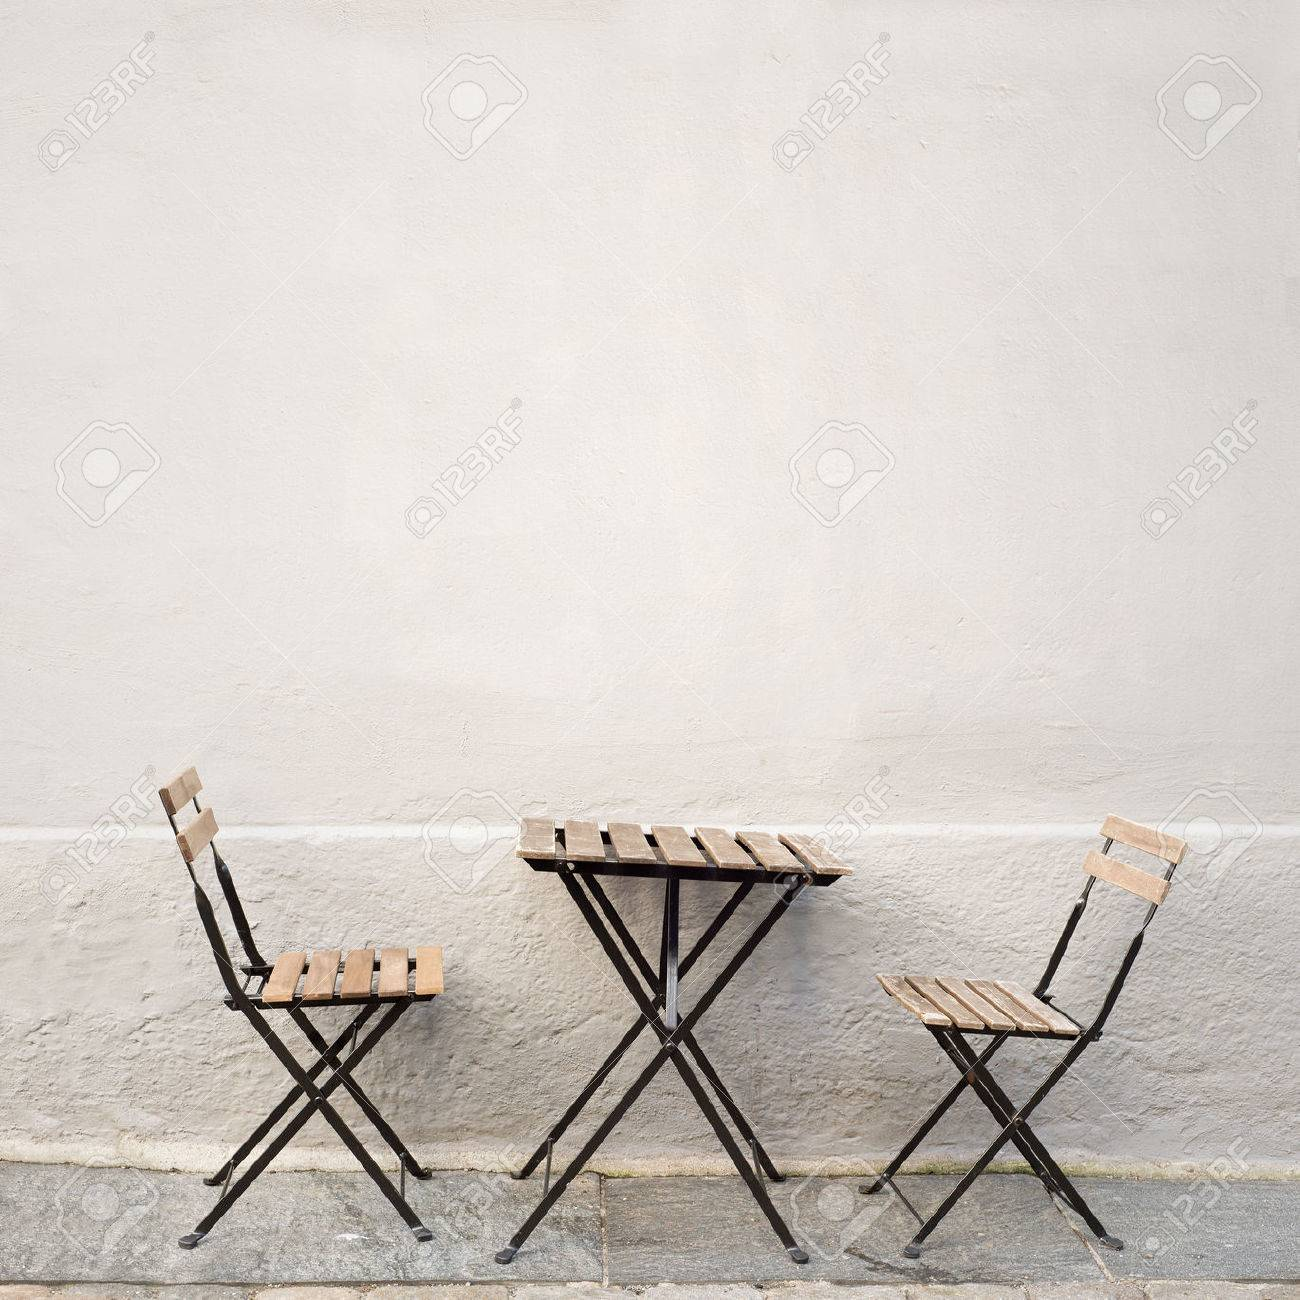 Outdoor Table And Two Chairs Near The Wall At Coffee Shop, Bergen, Norway  Stock